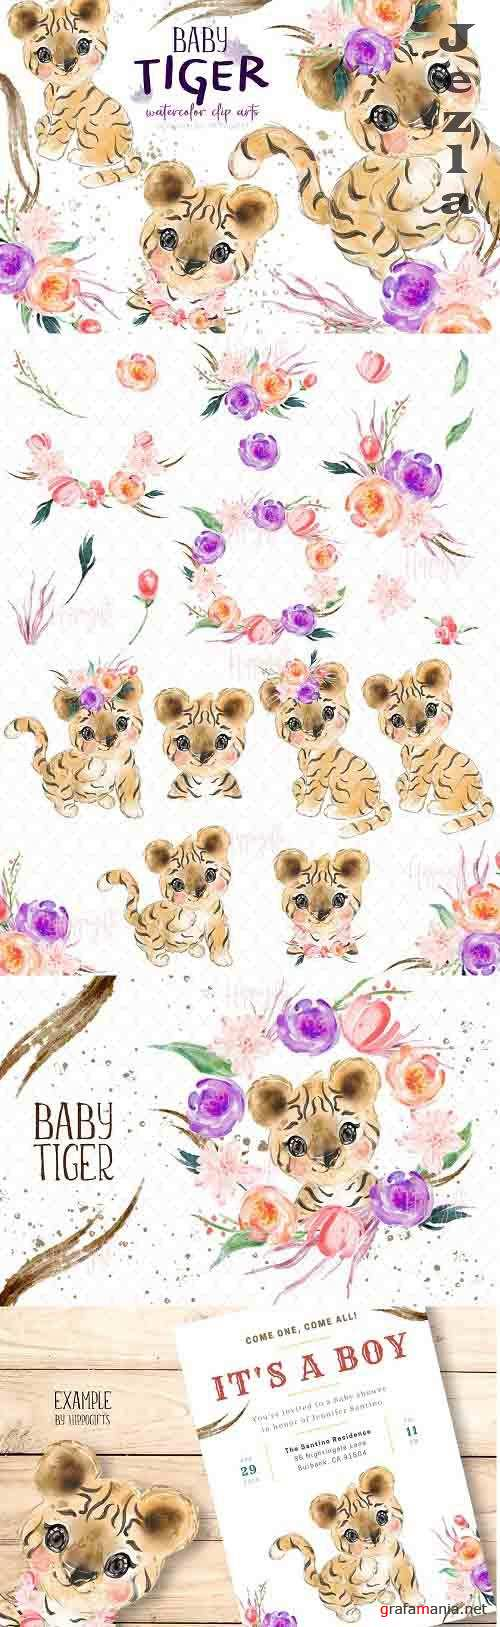 Baby tiger watercolor clip art - 6114179